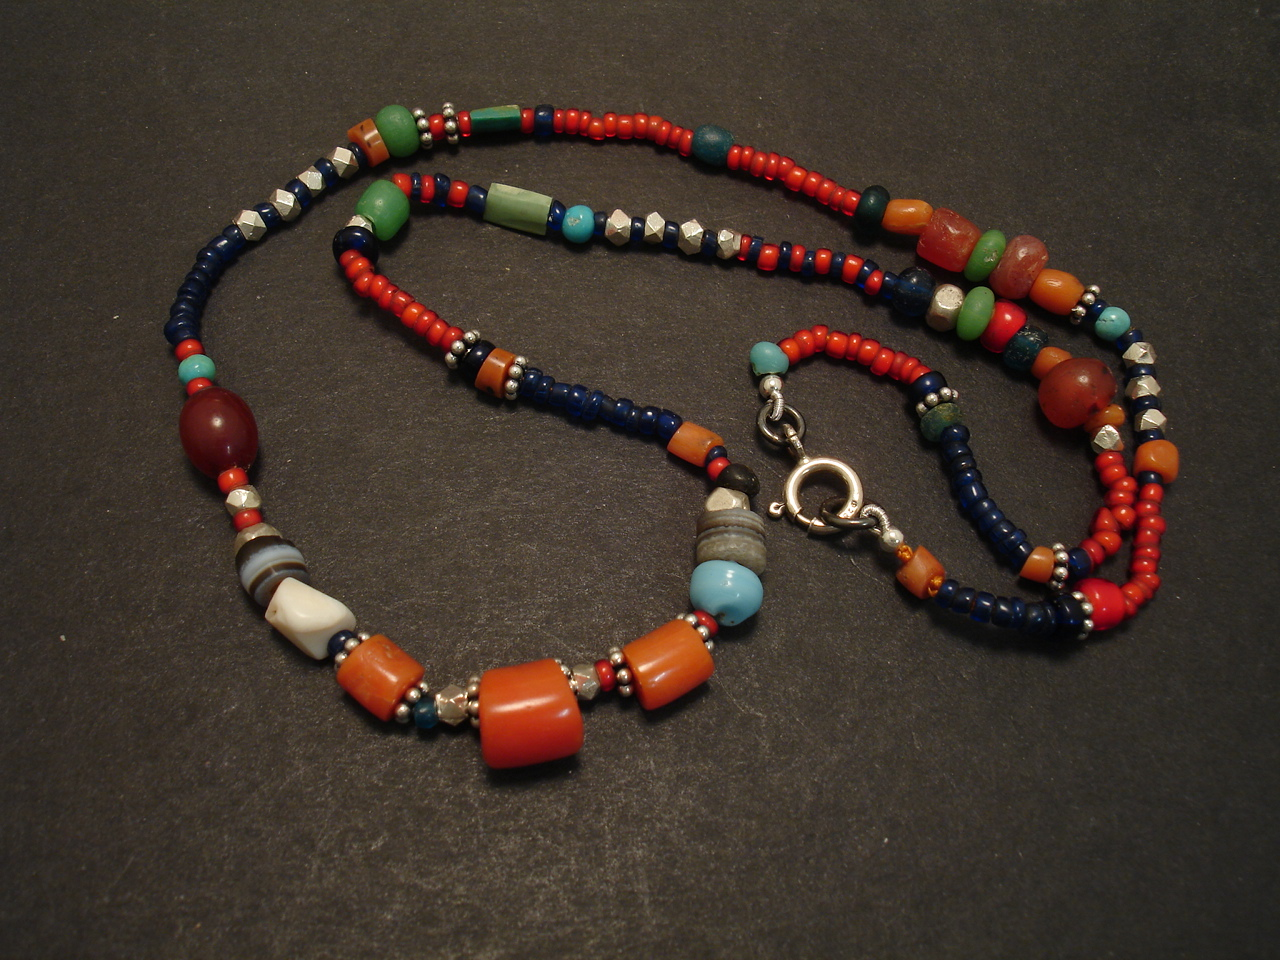 Native Coral Rare Bead Necklace Christopher William Sydney Australia Antique Ruby Coral And Tribal Jewellery